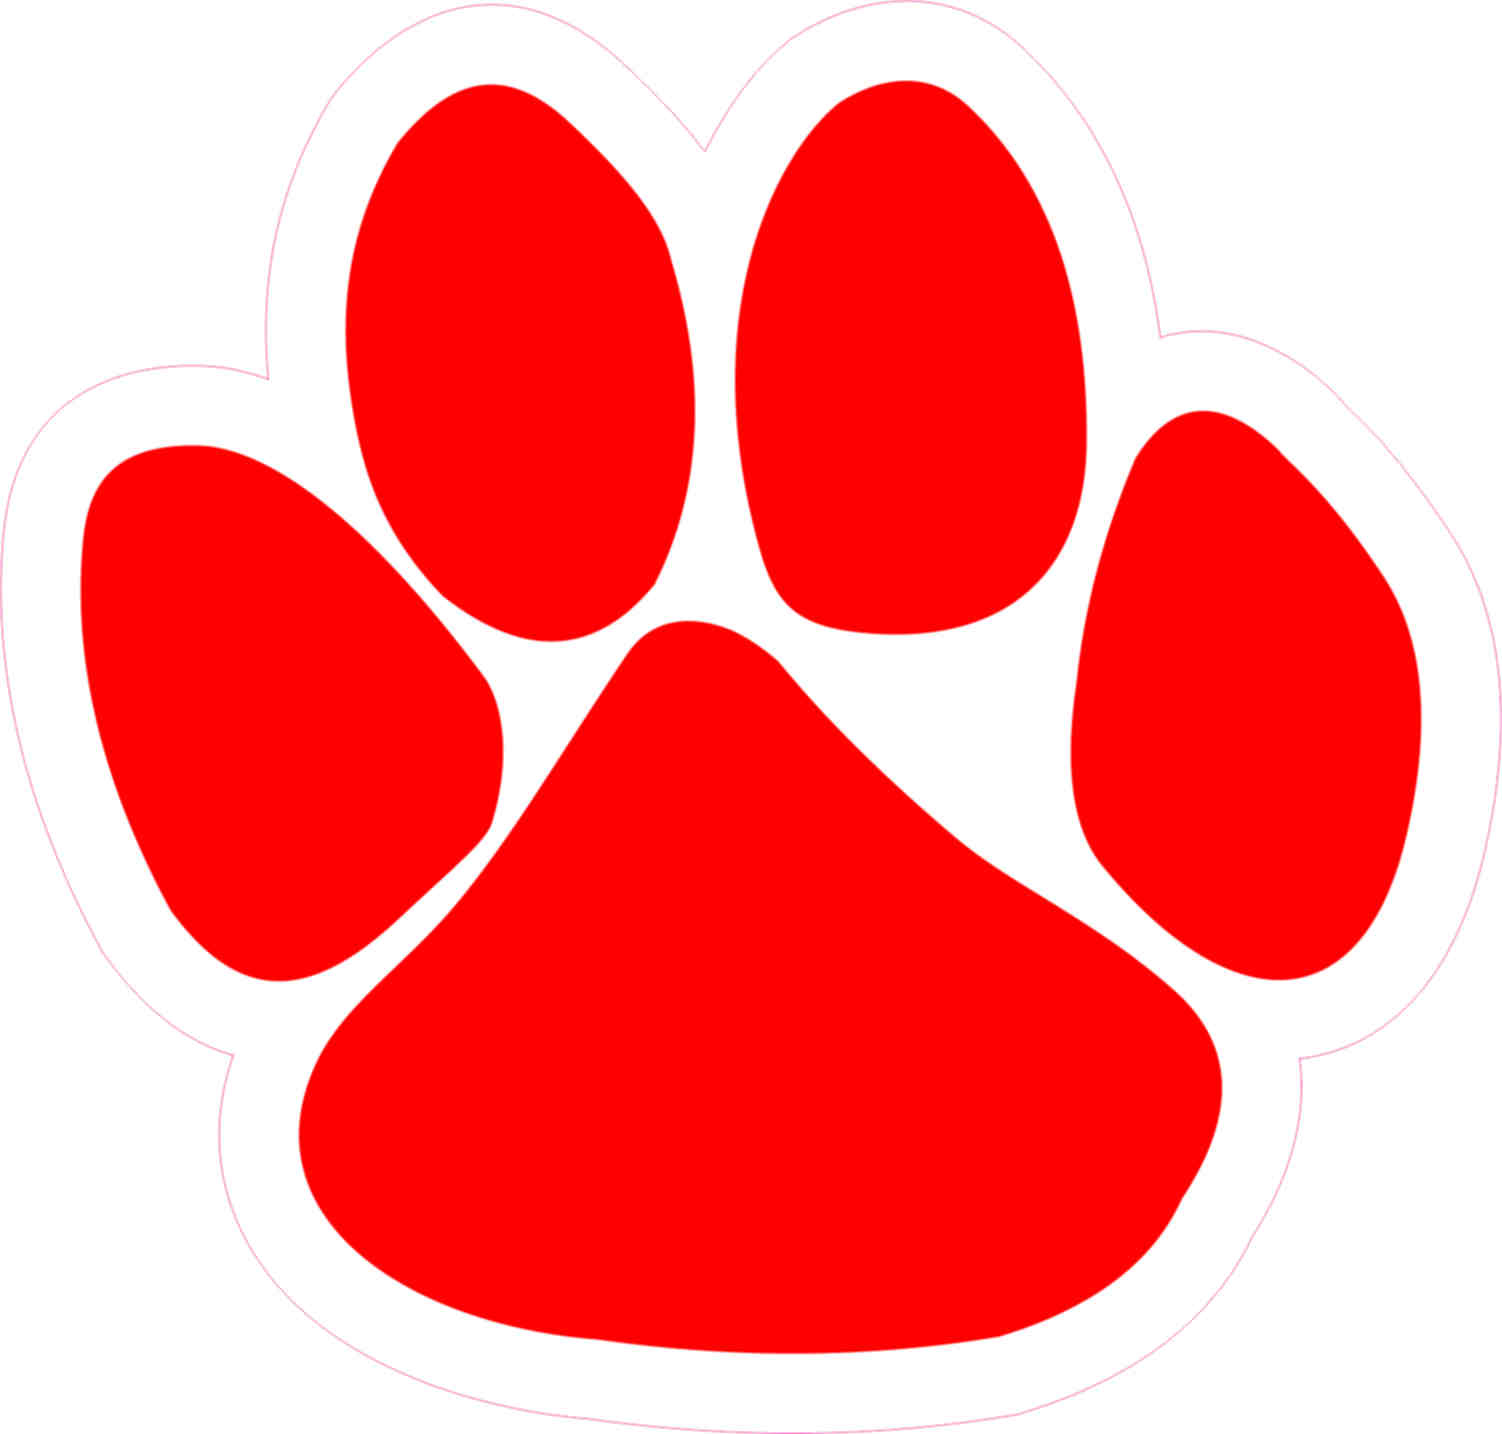 Red paw clipart image freeuse stock Red Paw Print | Free download best Red Paw Print on ... image freeuse stock